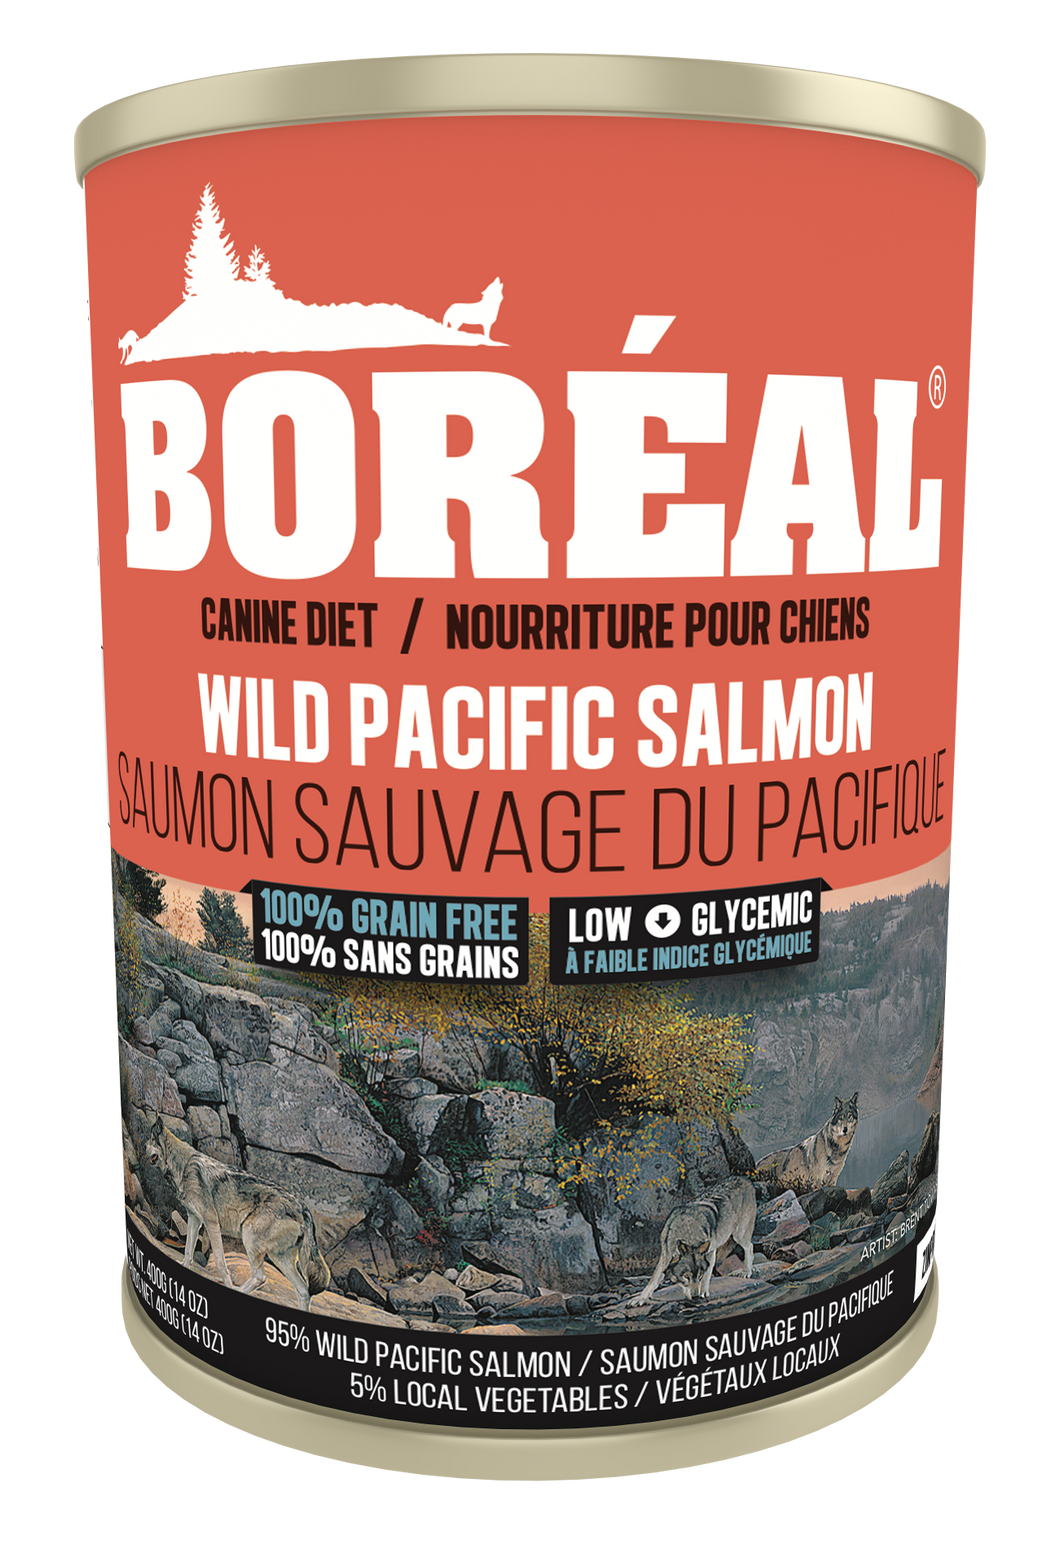 Boréal - Big Bear Wild Pacific Salmon Dog Food - All Breed - Low Glycemic - Limited Carb - Potato Free - Single Sourced Fish - Made in Canada